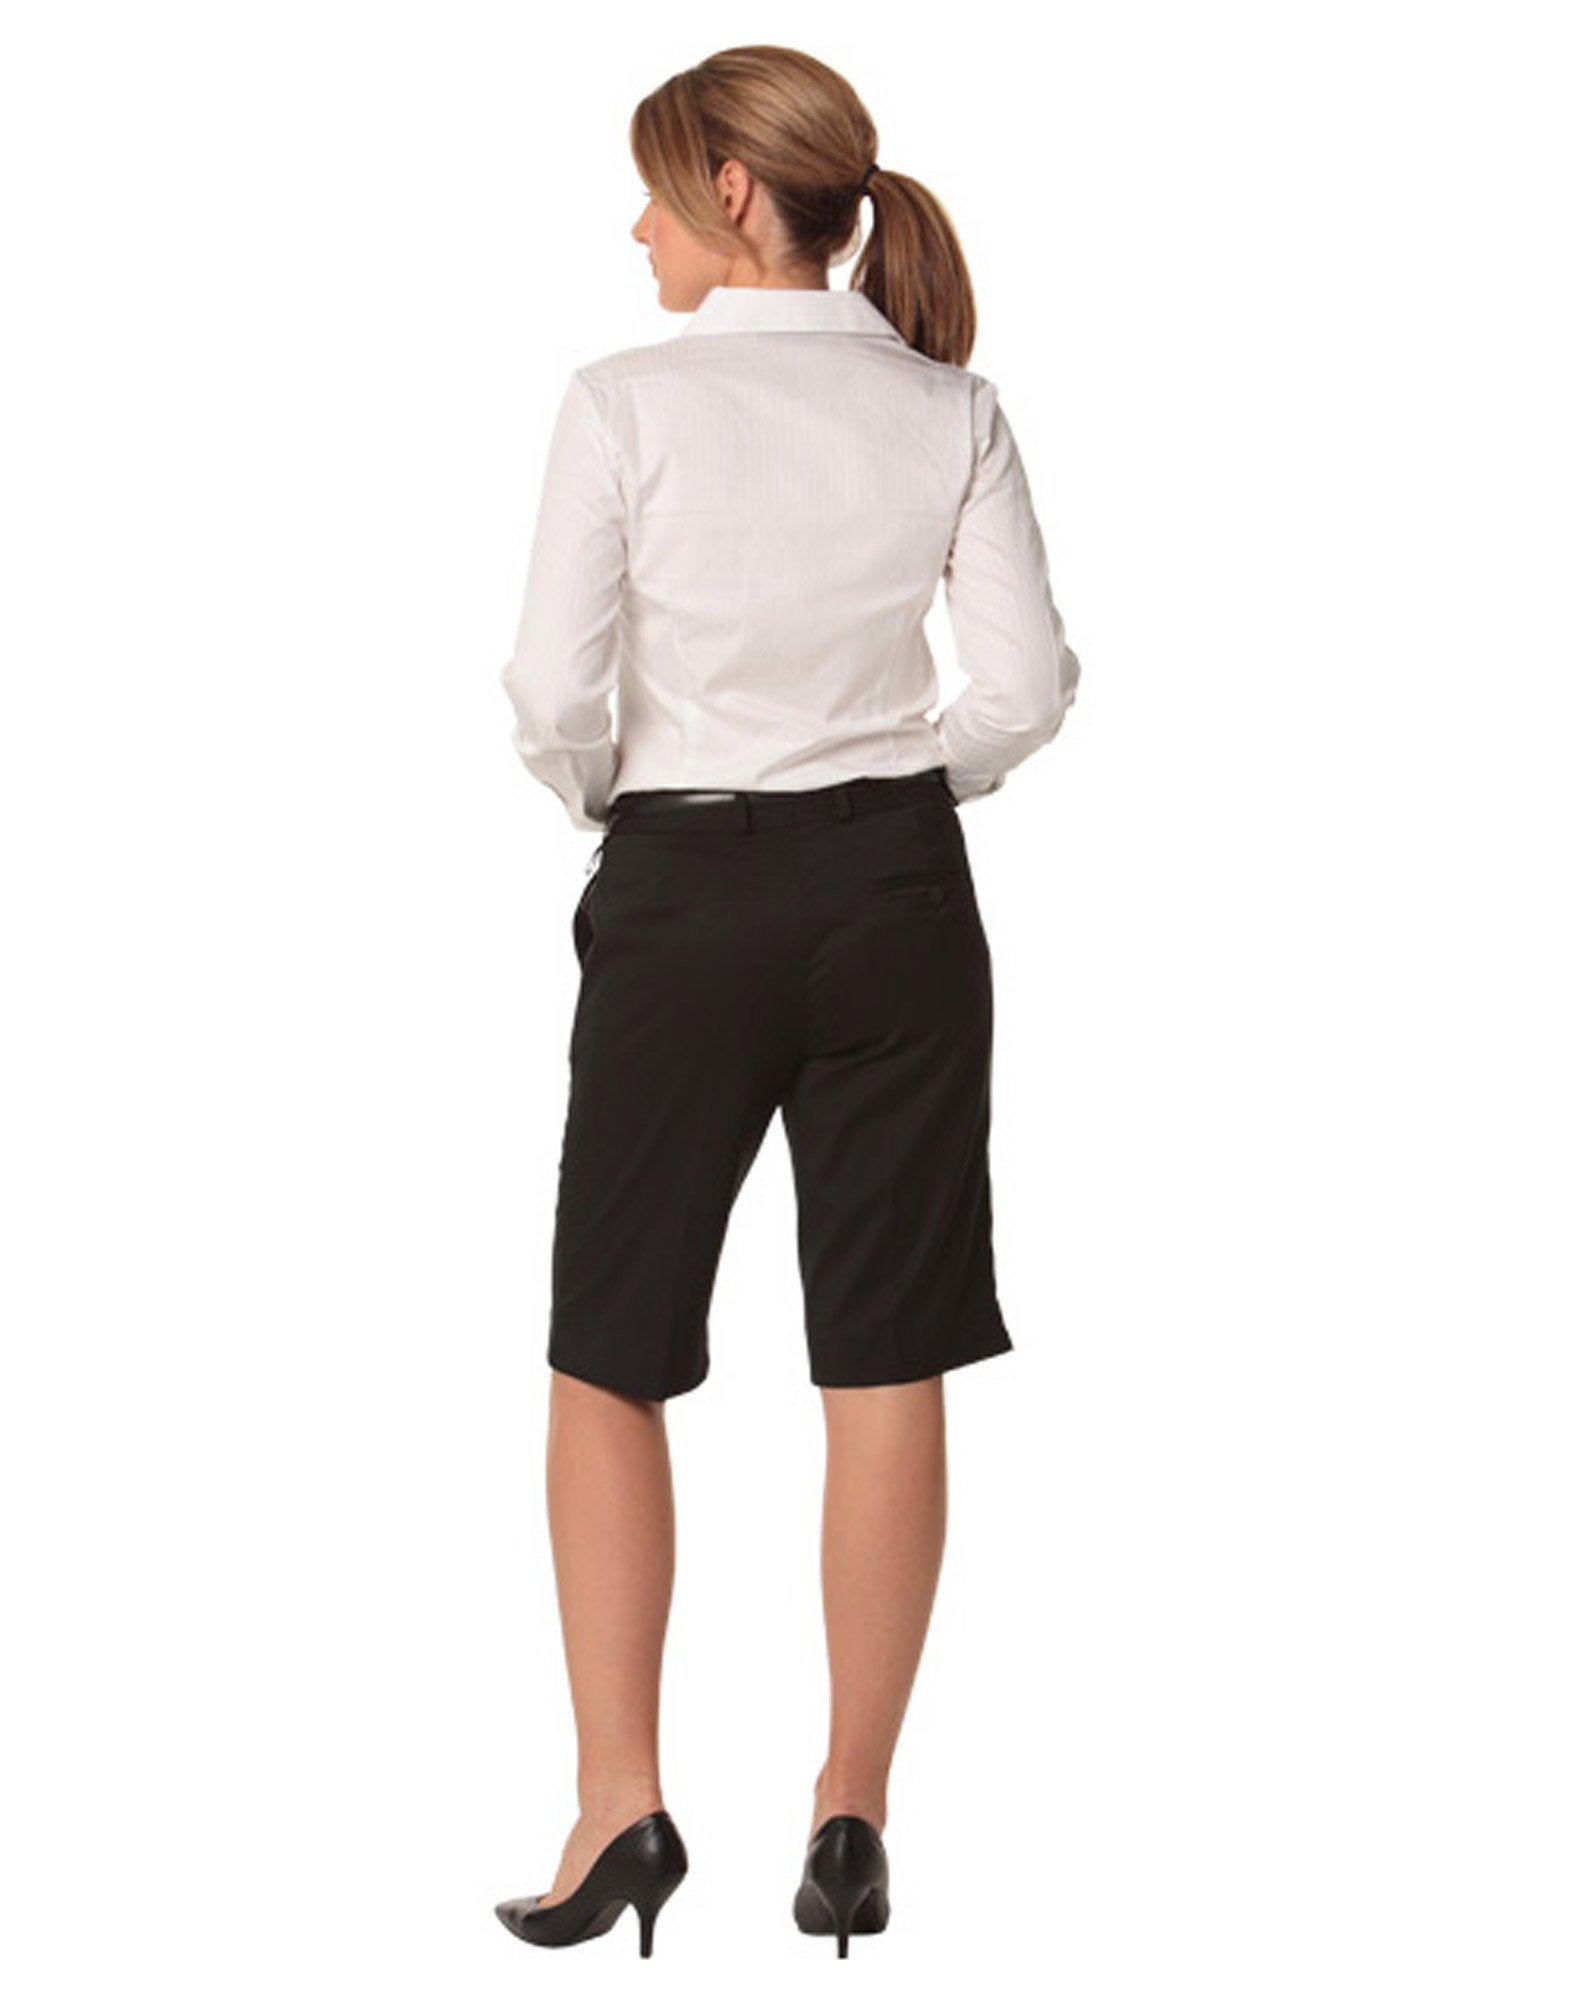 Stretch Knee Length Flexi Waist Shorts